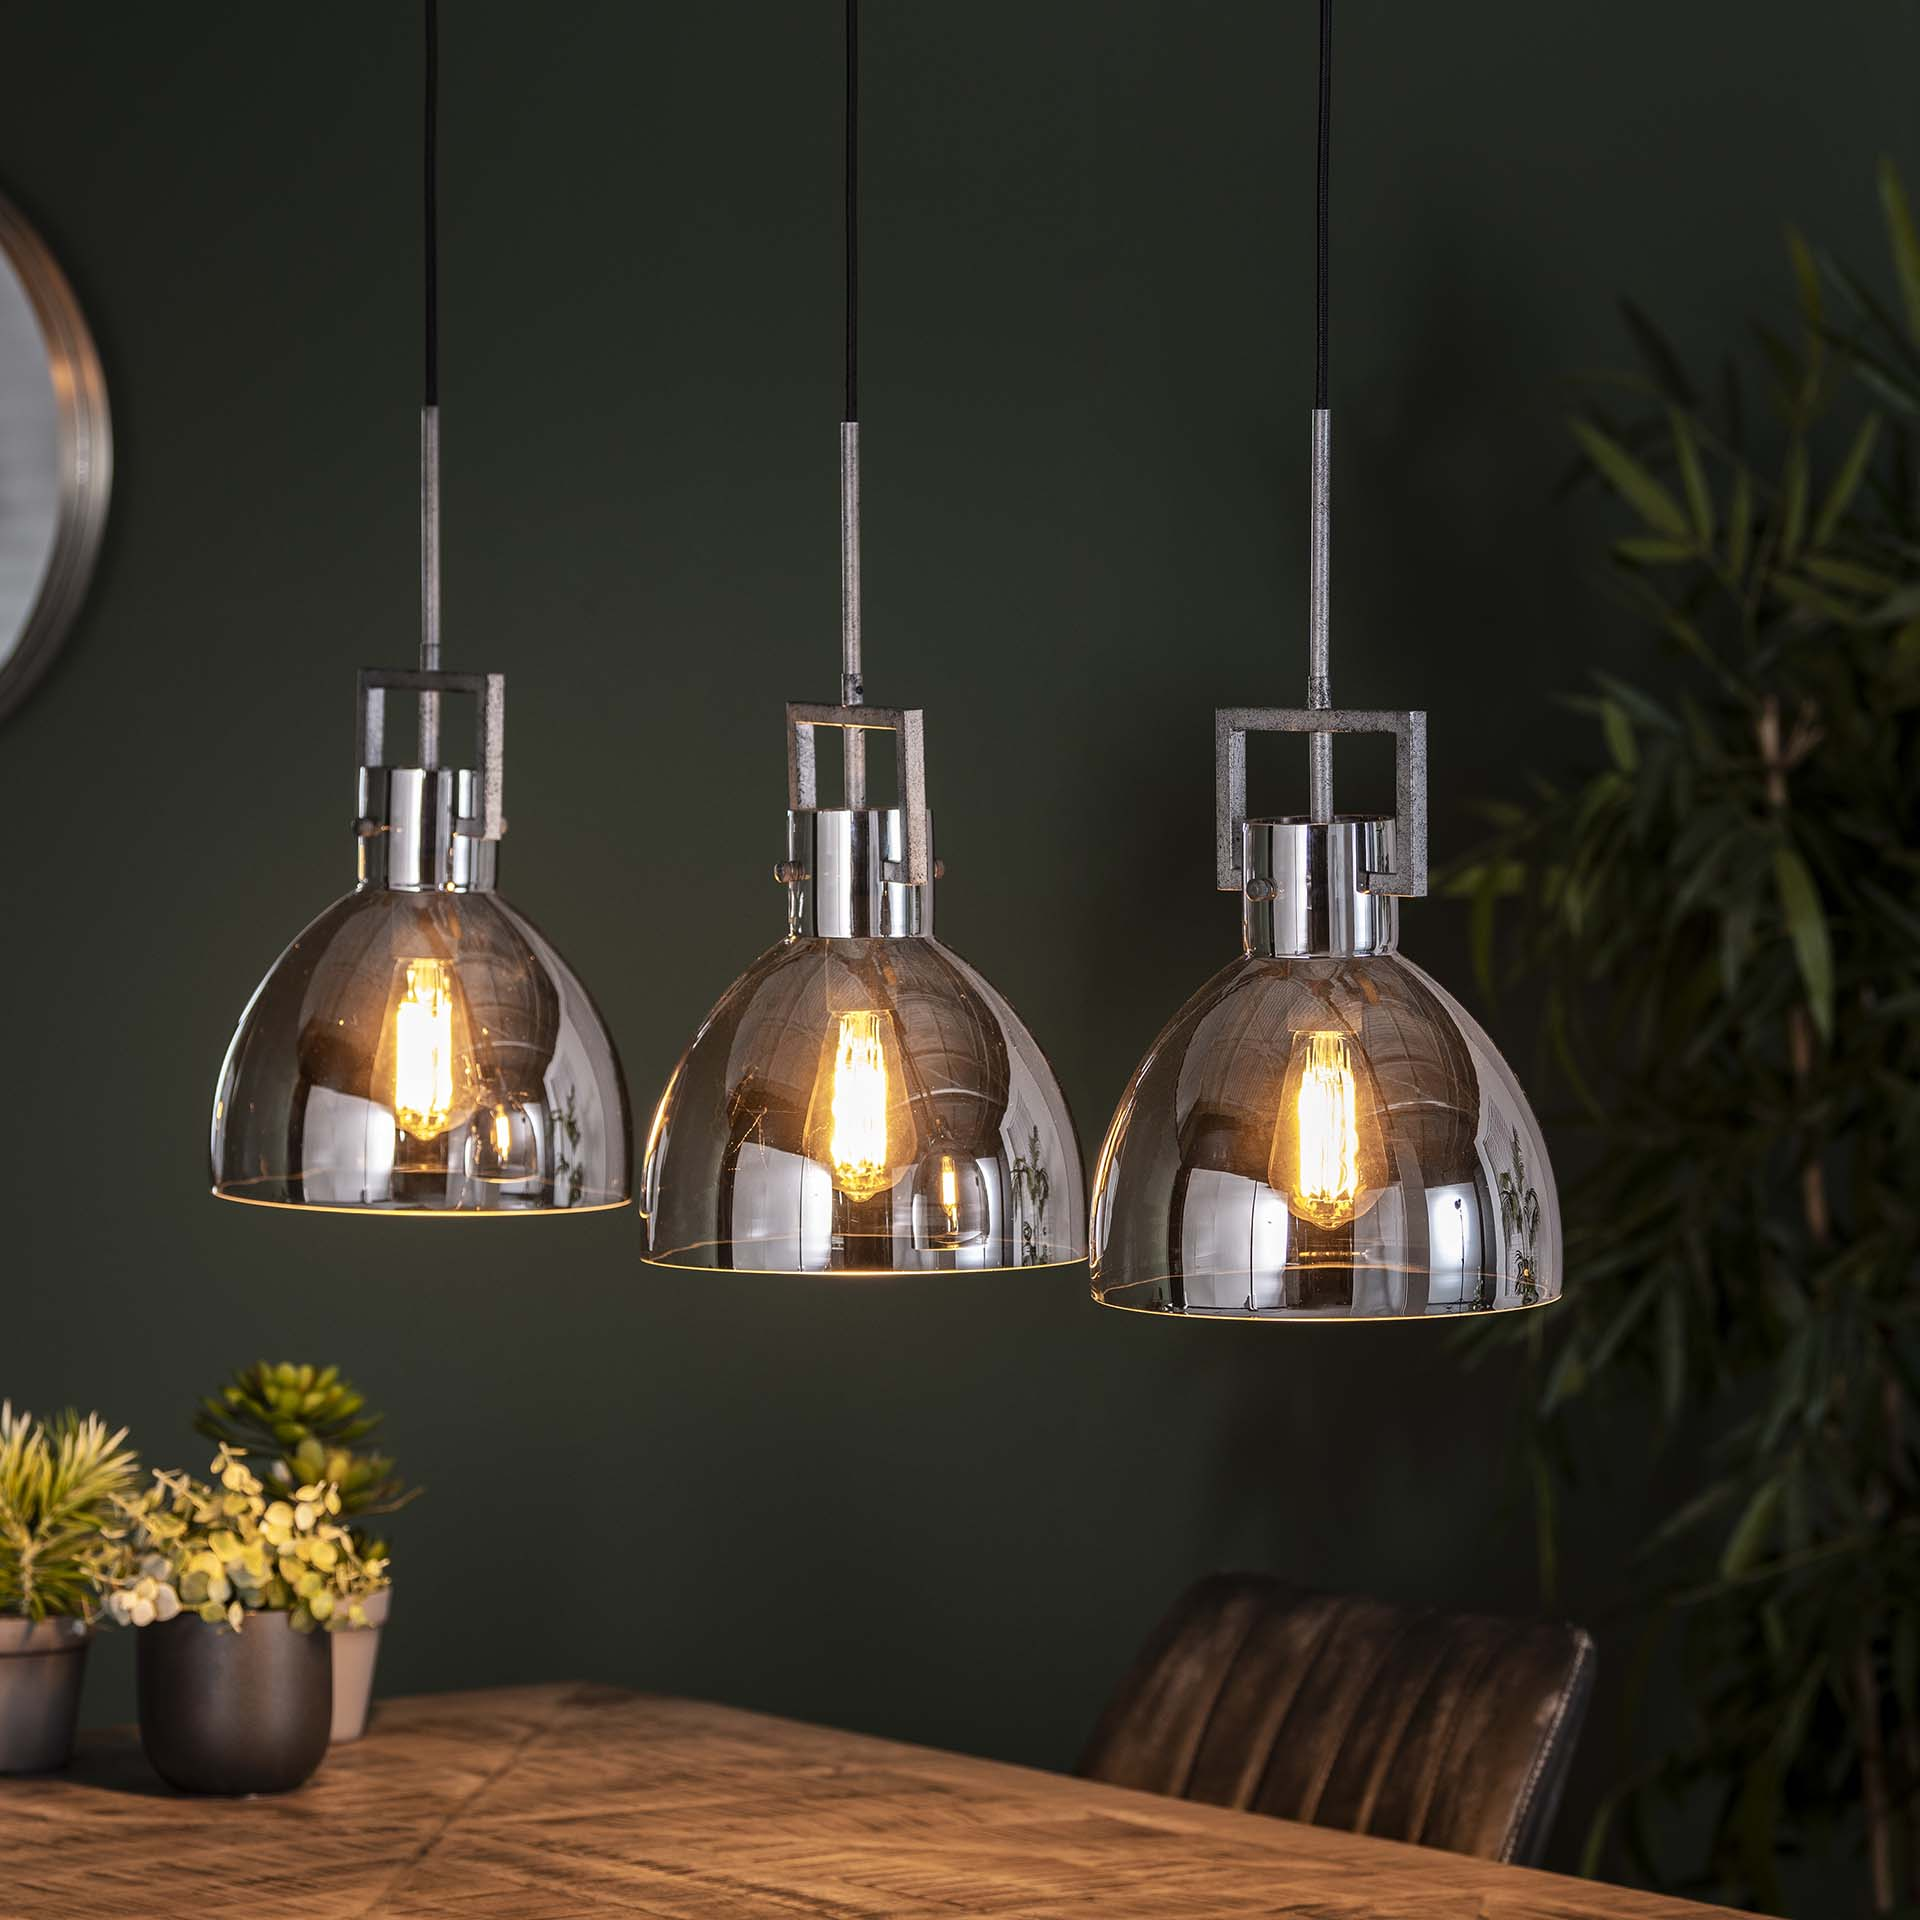 Hanglamp 3L industry chromed glass Oud zilver